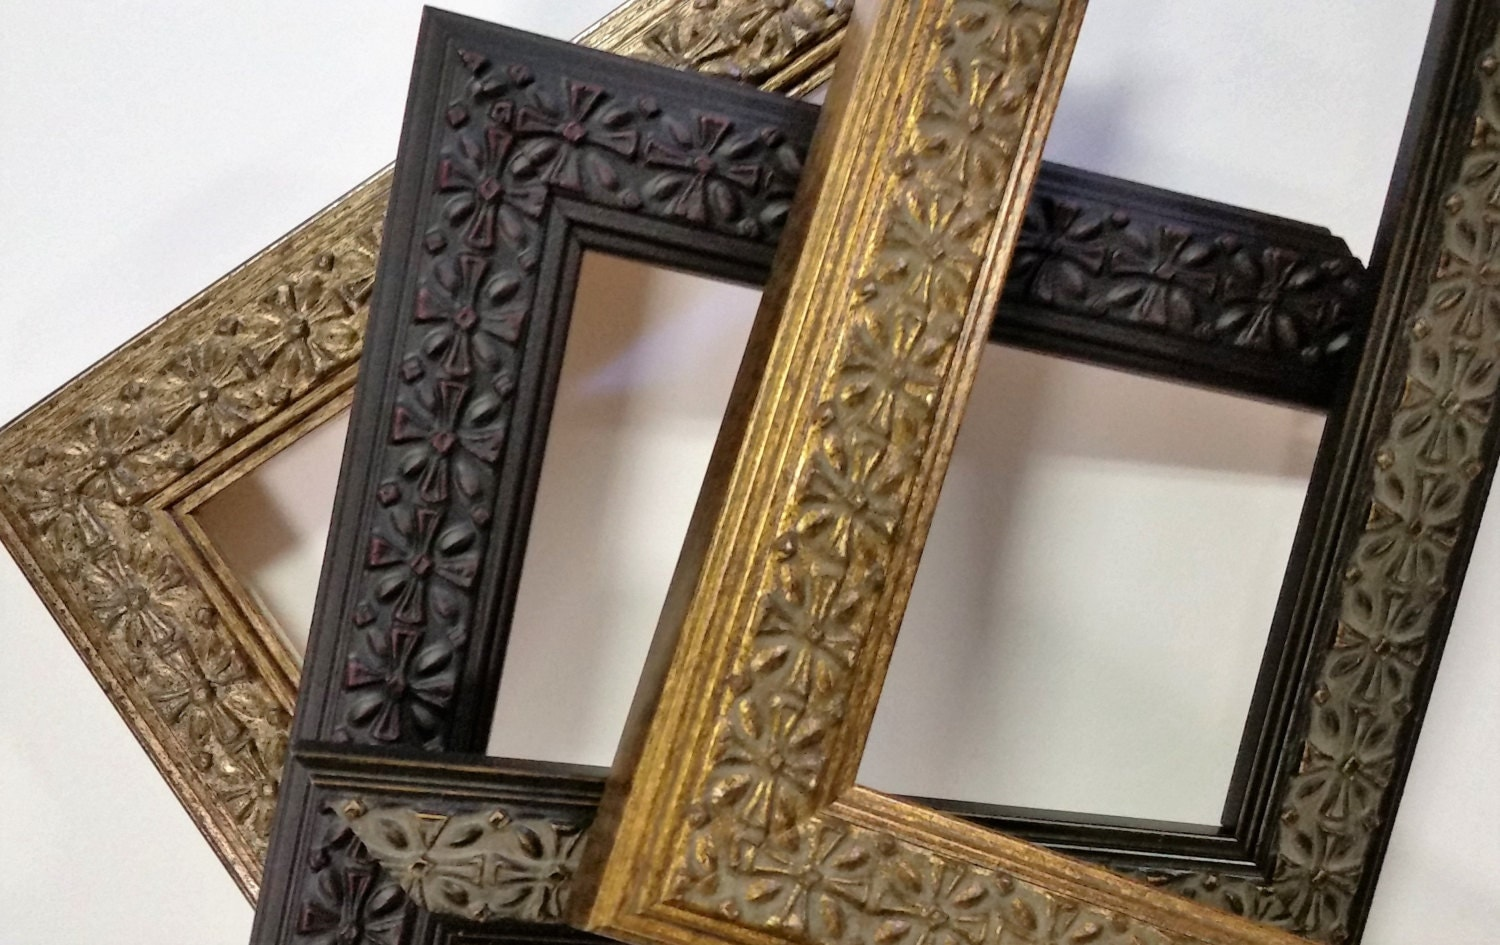 14 X 18 20 X 24 Wood Picture Frames Ornate Vintage